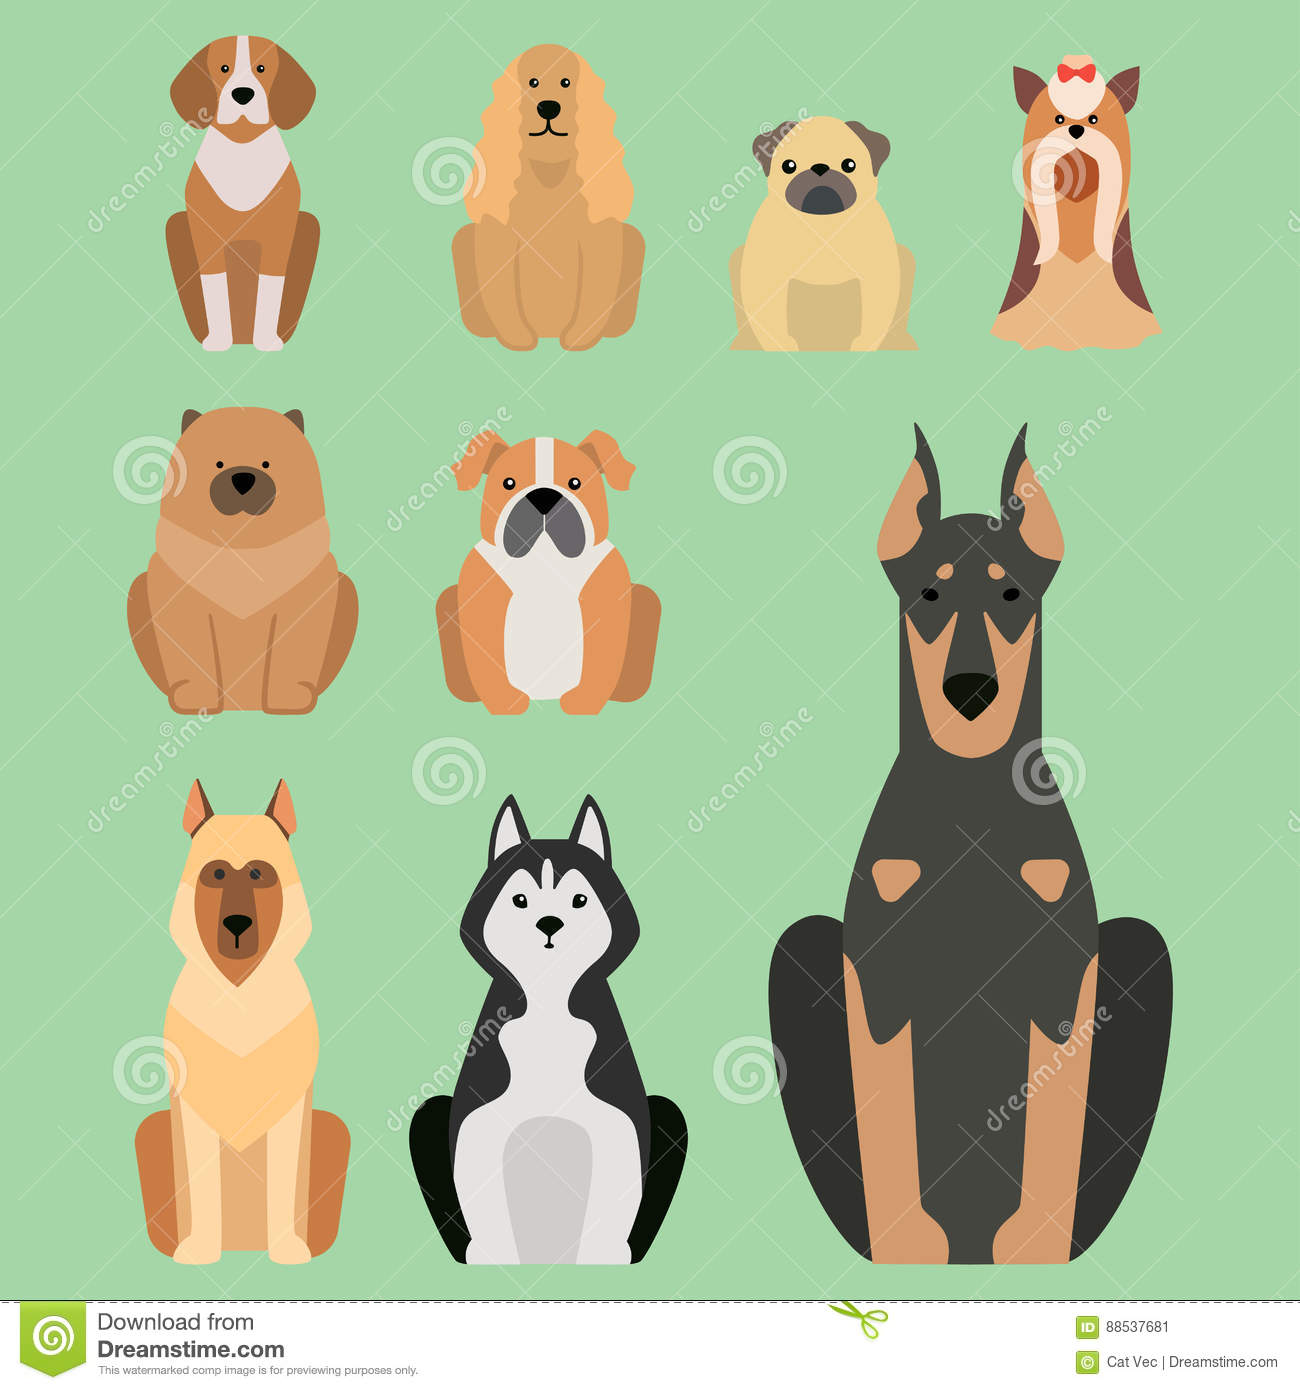 Funny cartoon dog character bread illustration in cartoon style happy puppy and isolated friendly mammal adorable mascot